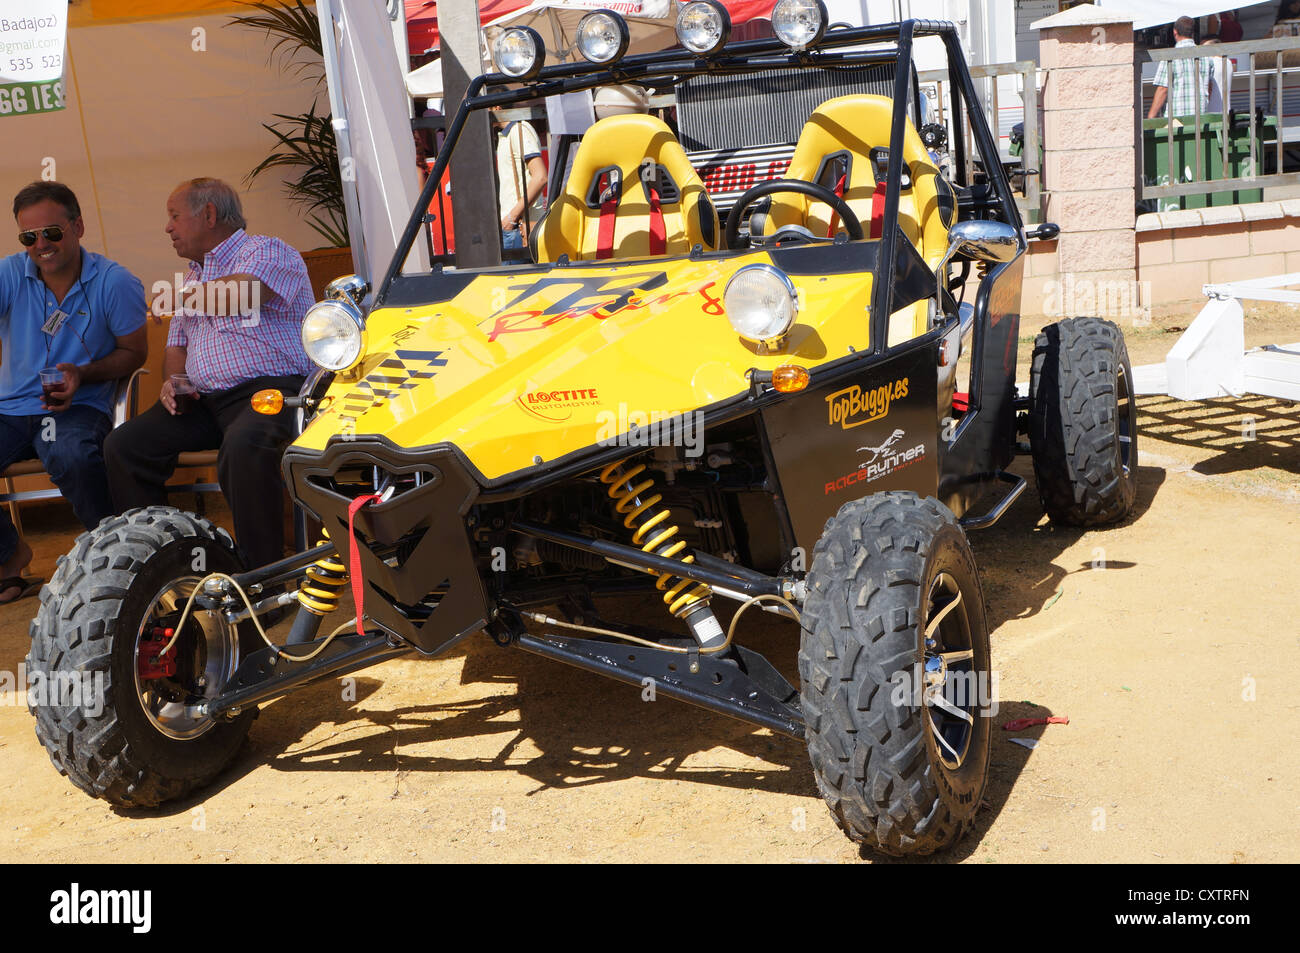 the fair International Livestock agro-industrial exhibition, view transportation futuristic monster car at Zafra, Stock Photo